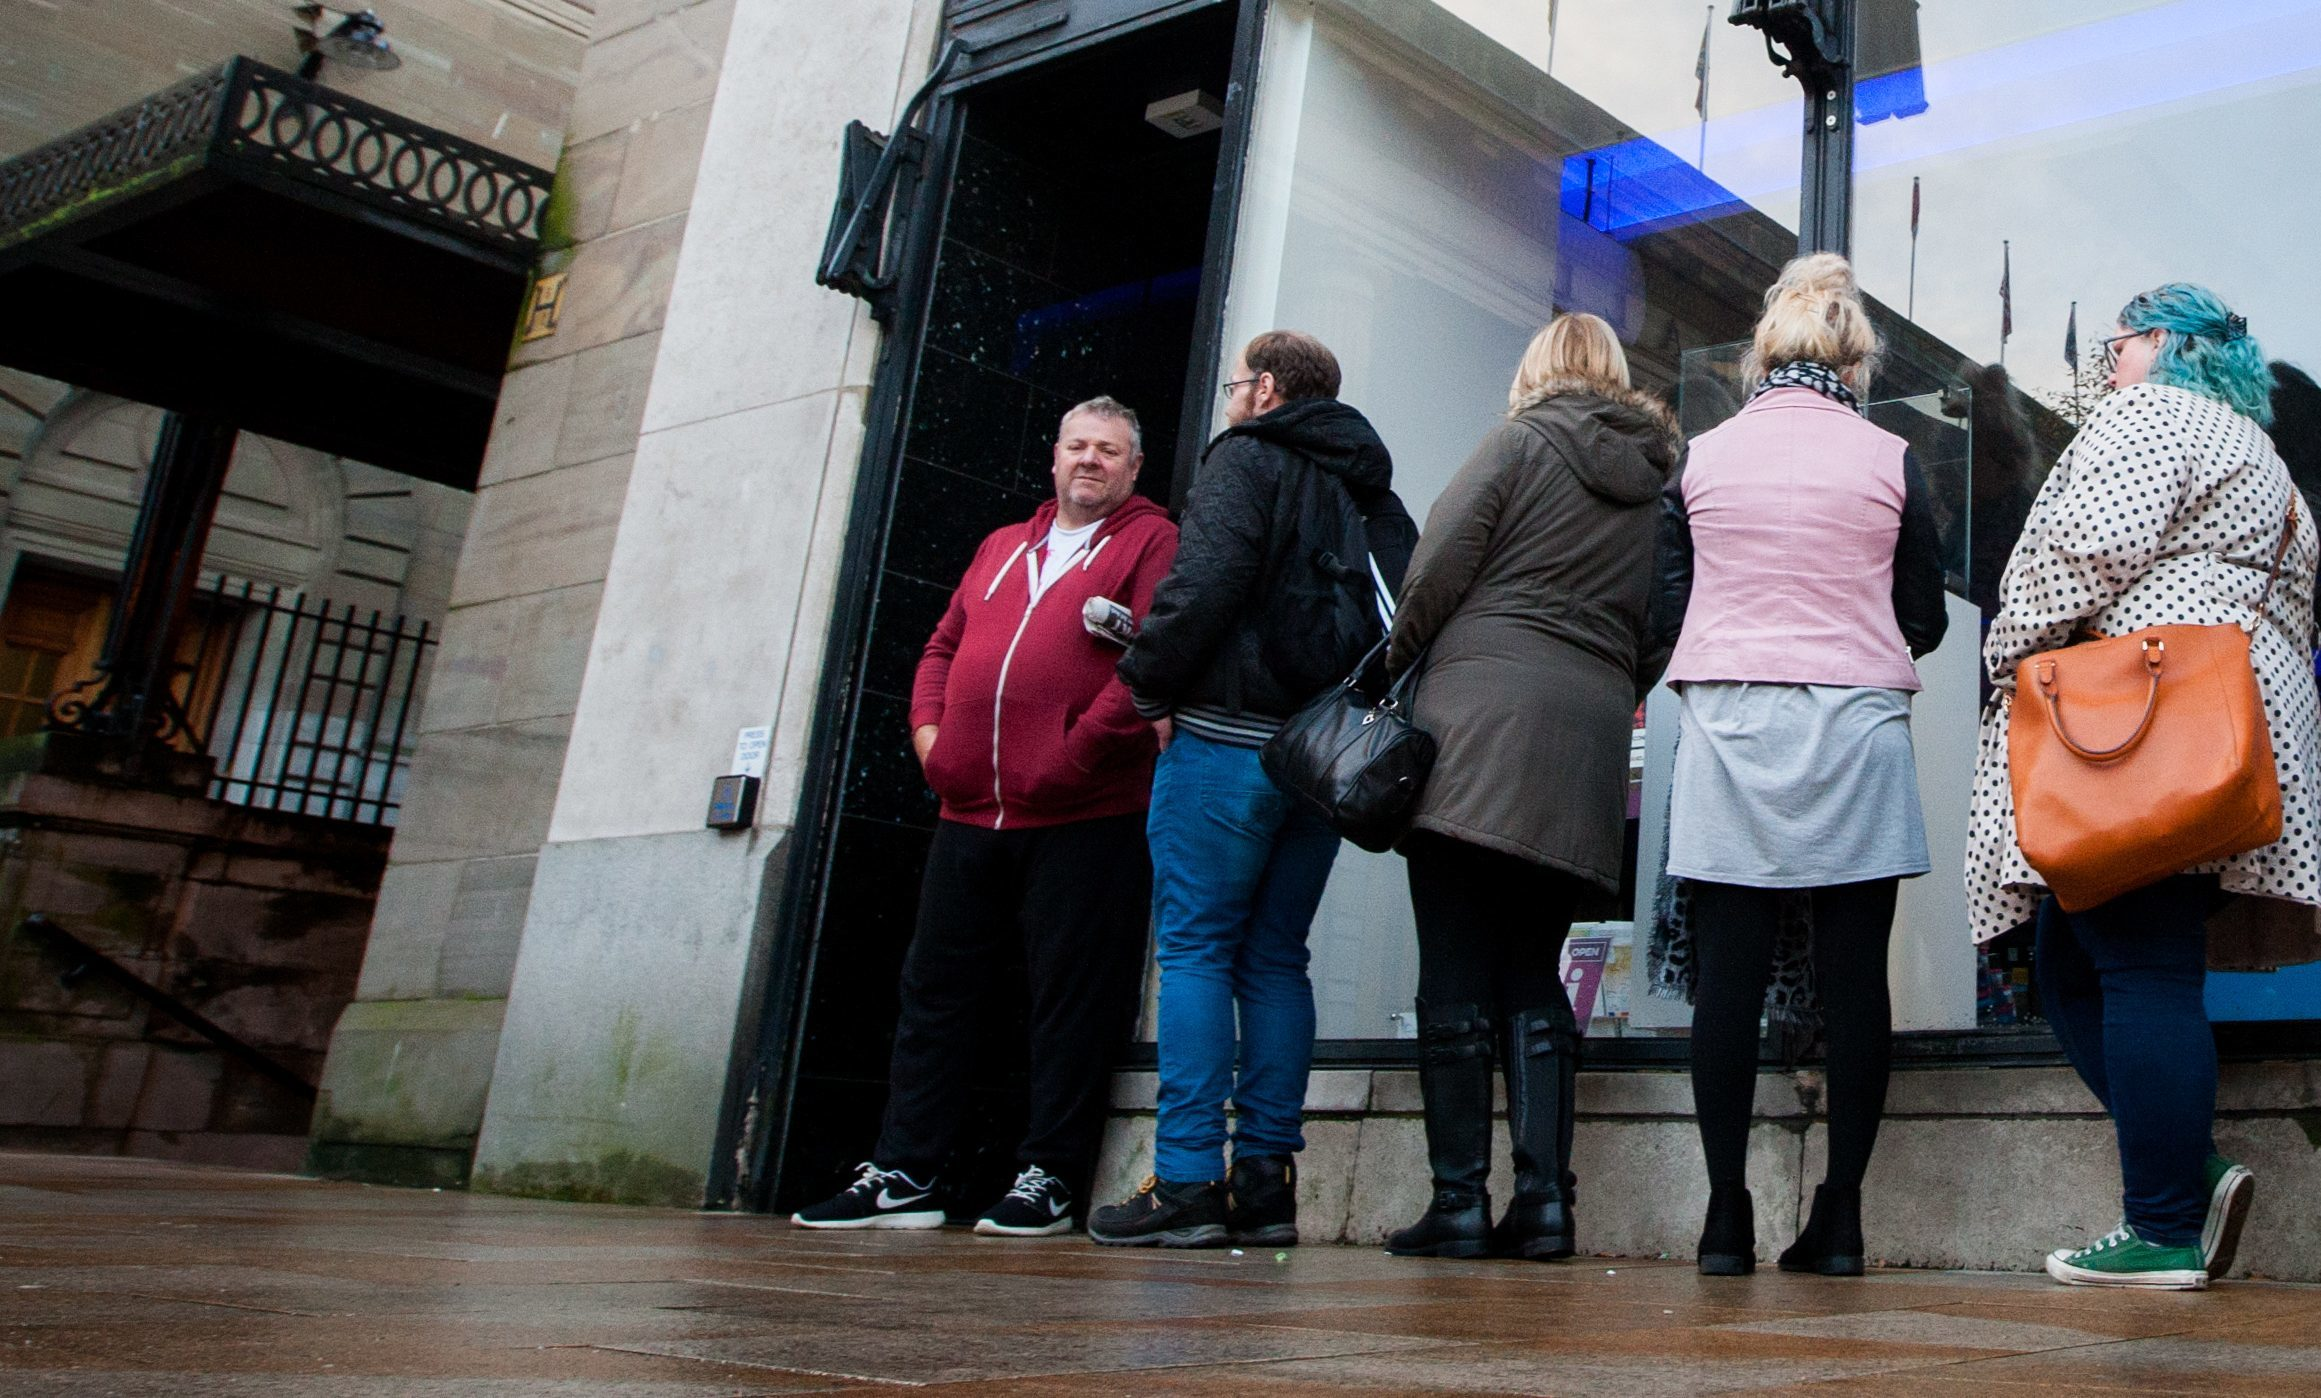 The queue at Dundee Box Office shortly before 9am.